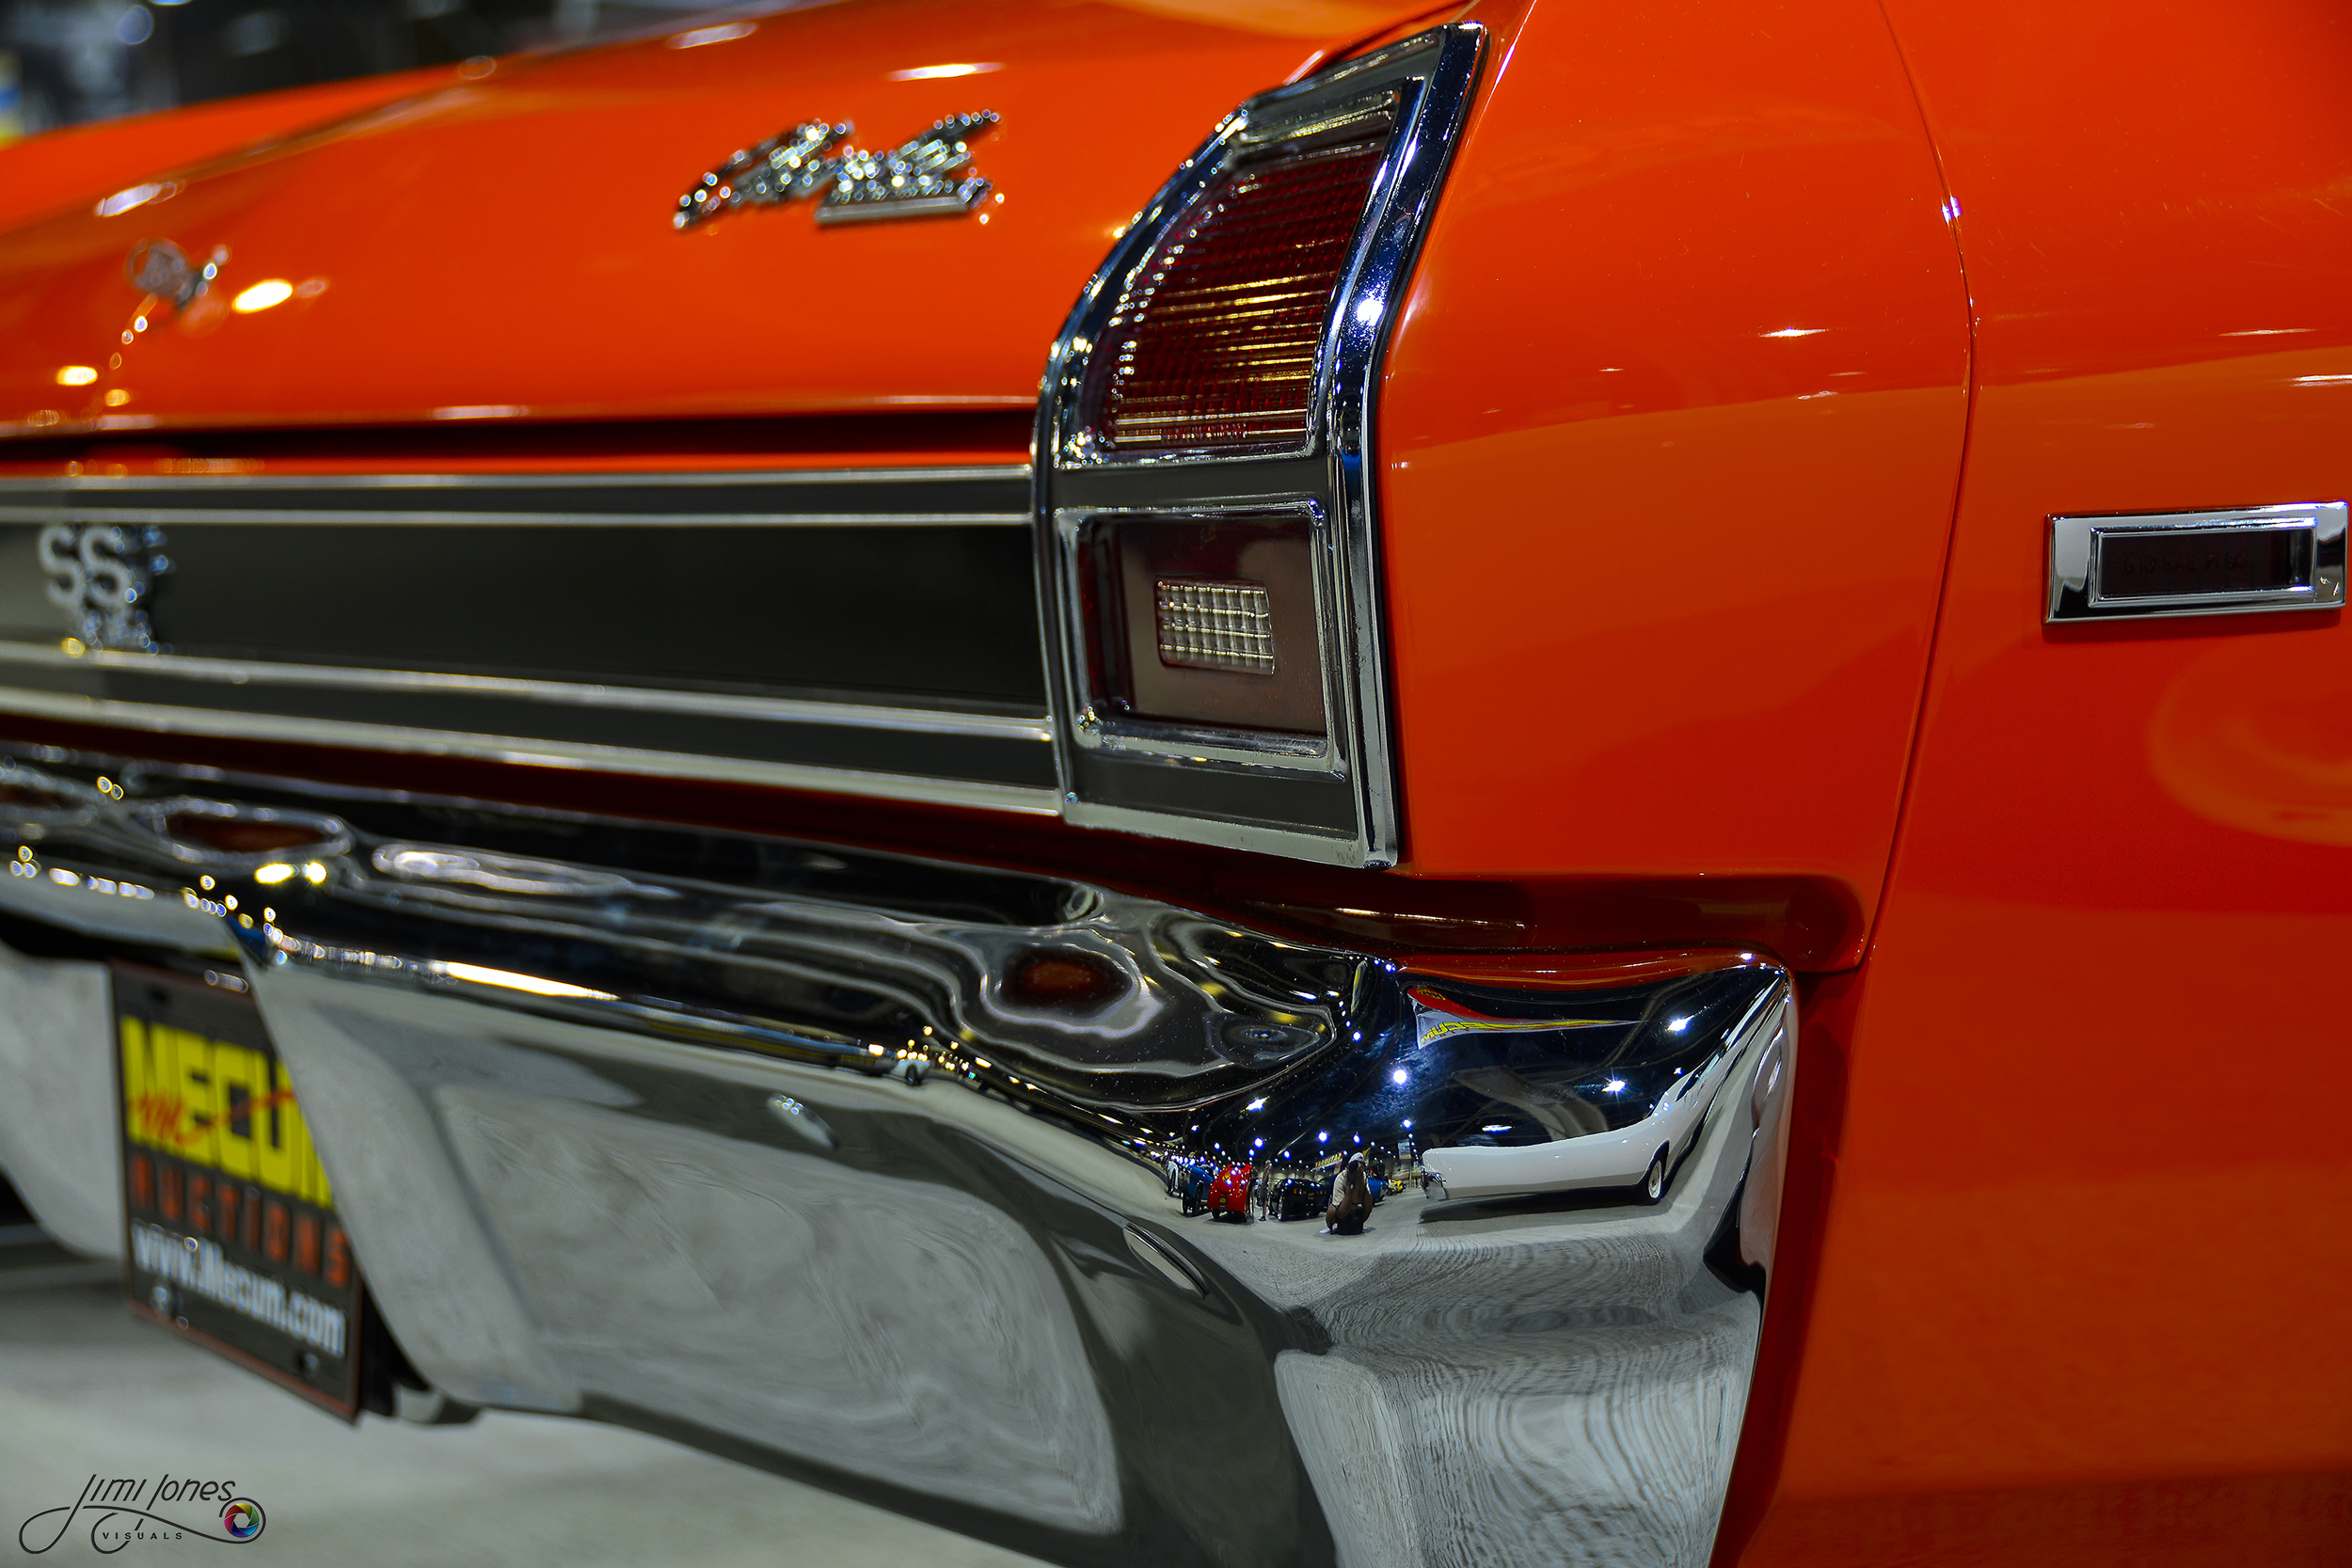 1969 Chevy SS Chevelle